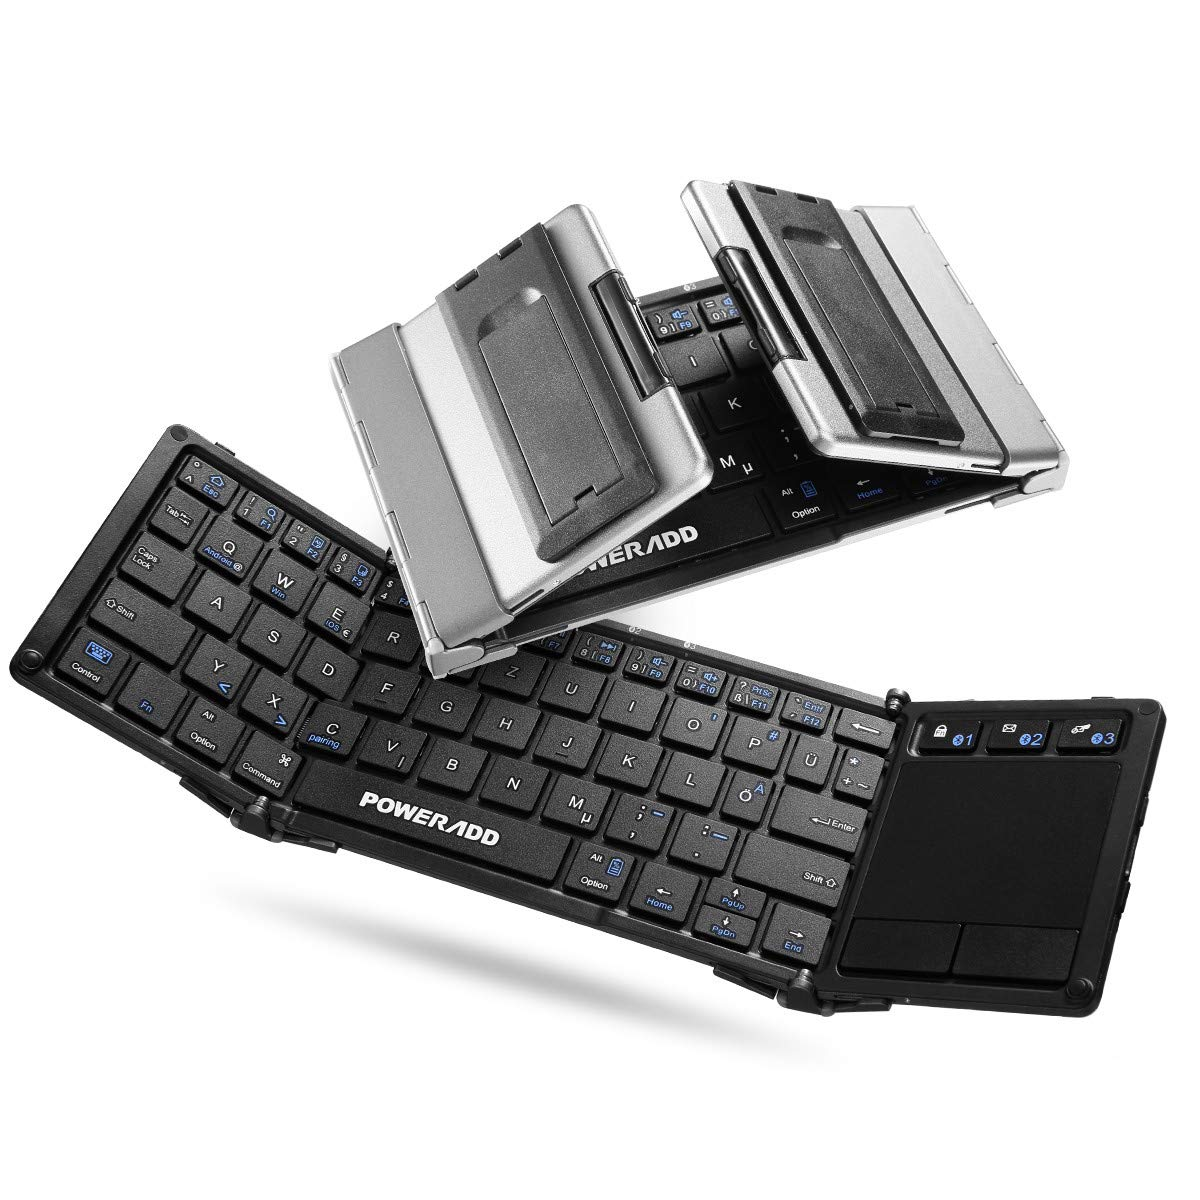 Poweradd Bluetooth Faltbare Tri-fold Tastatur mit Touchpad für iOS, Android, Windows, PC, Tablets und Smartphone